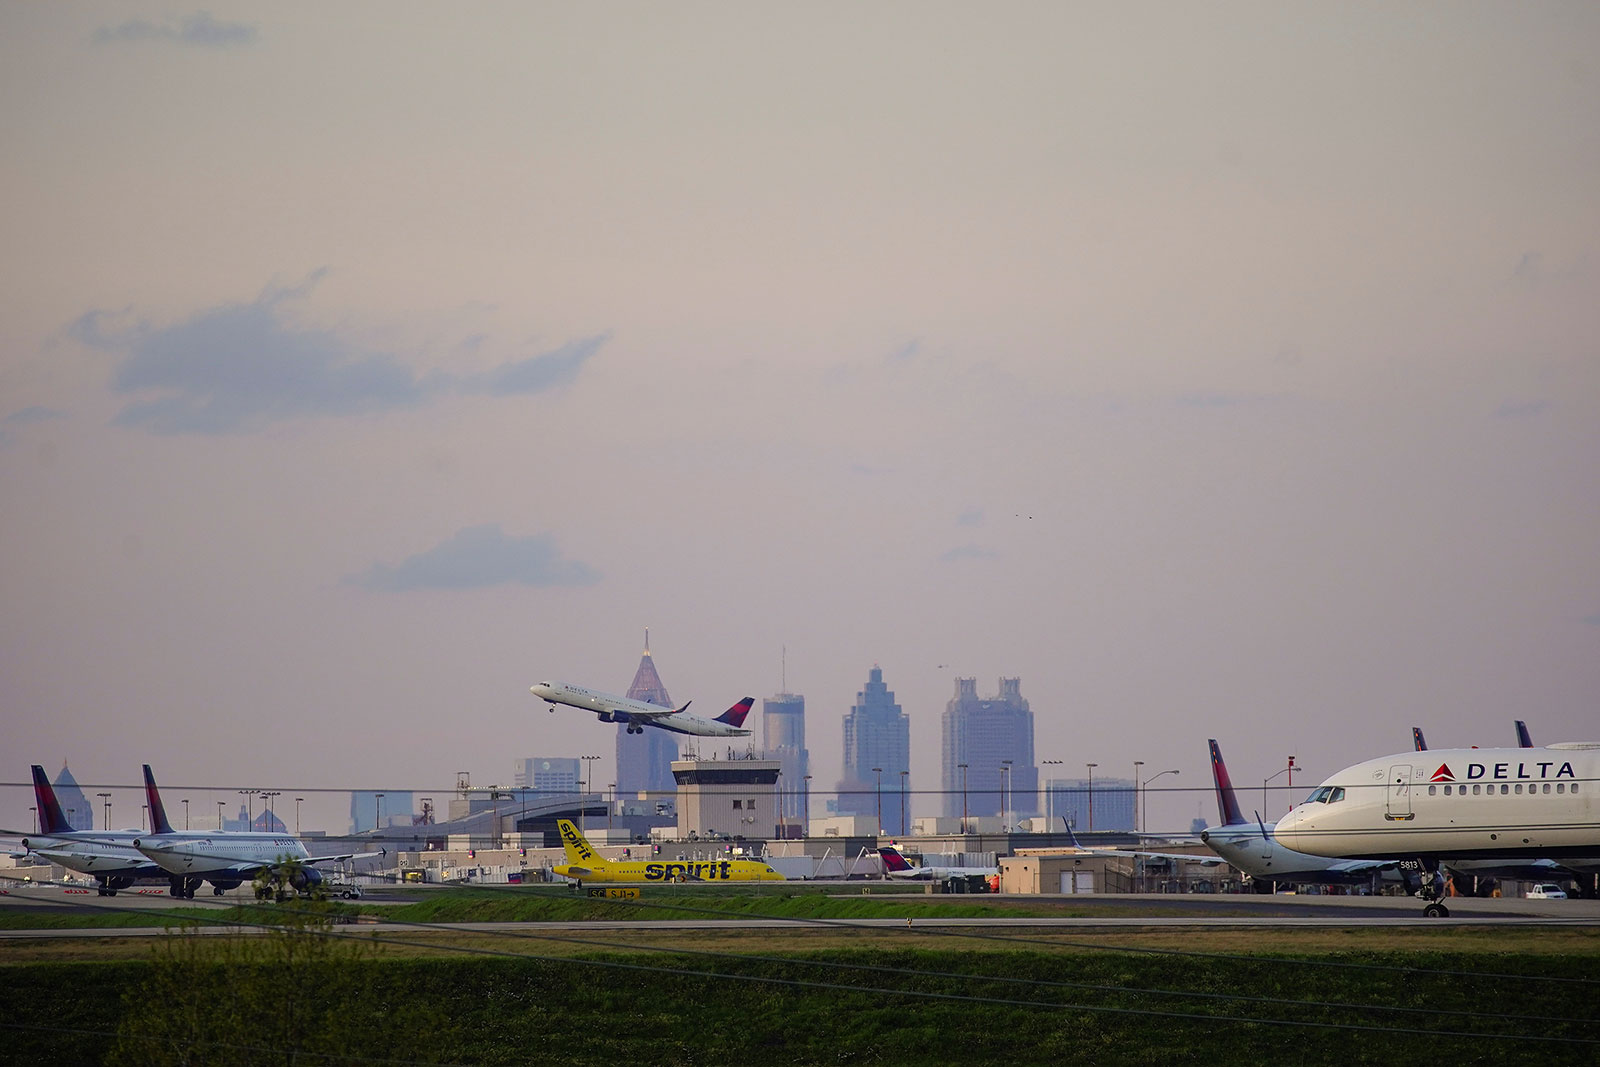 Planes take off from Atlanta Hartsfield-Jackson International Airport.